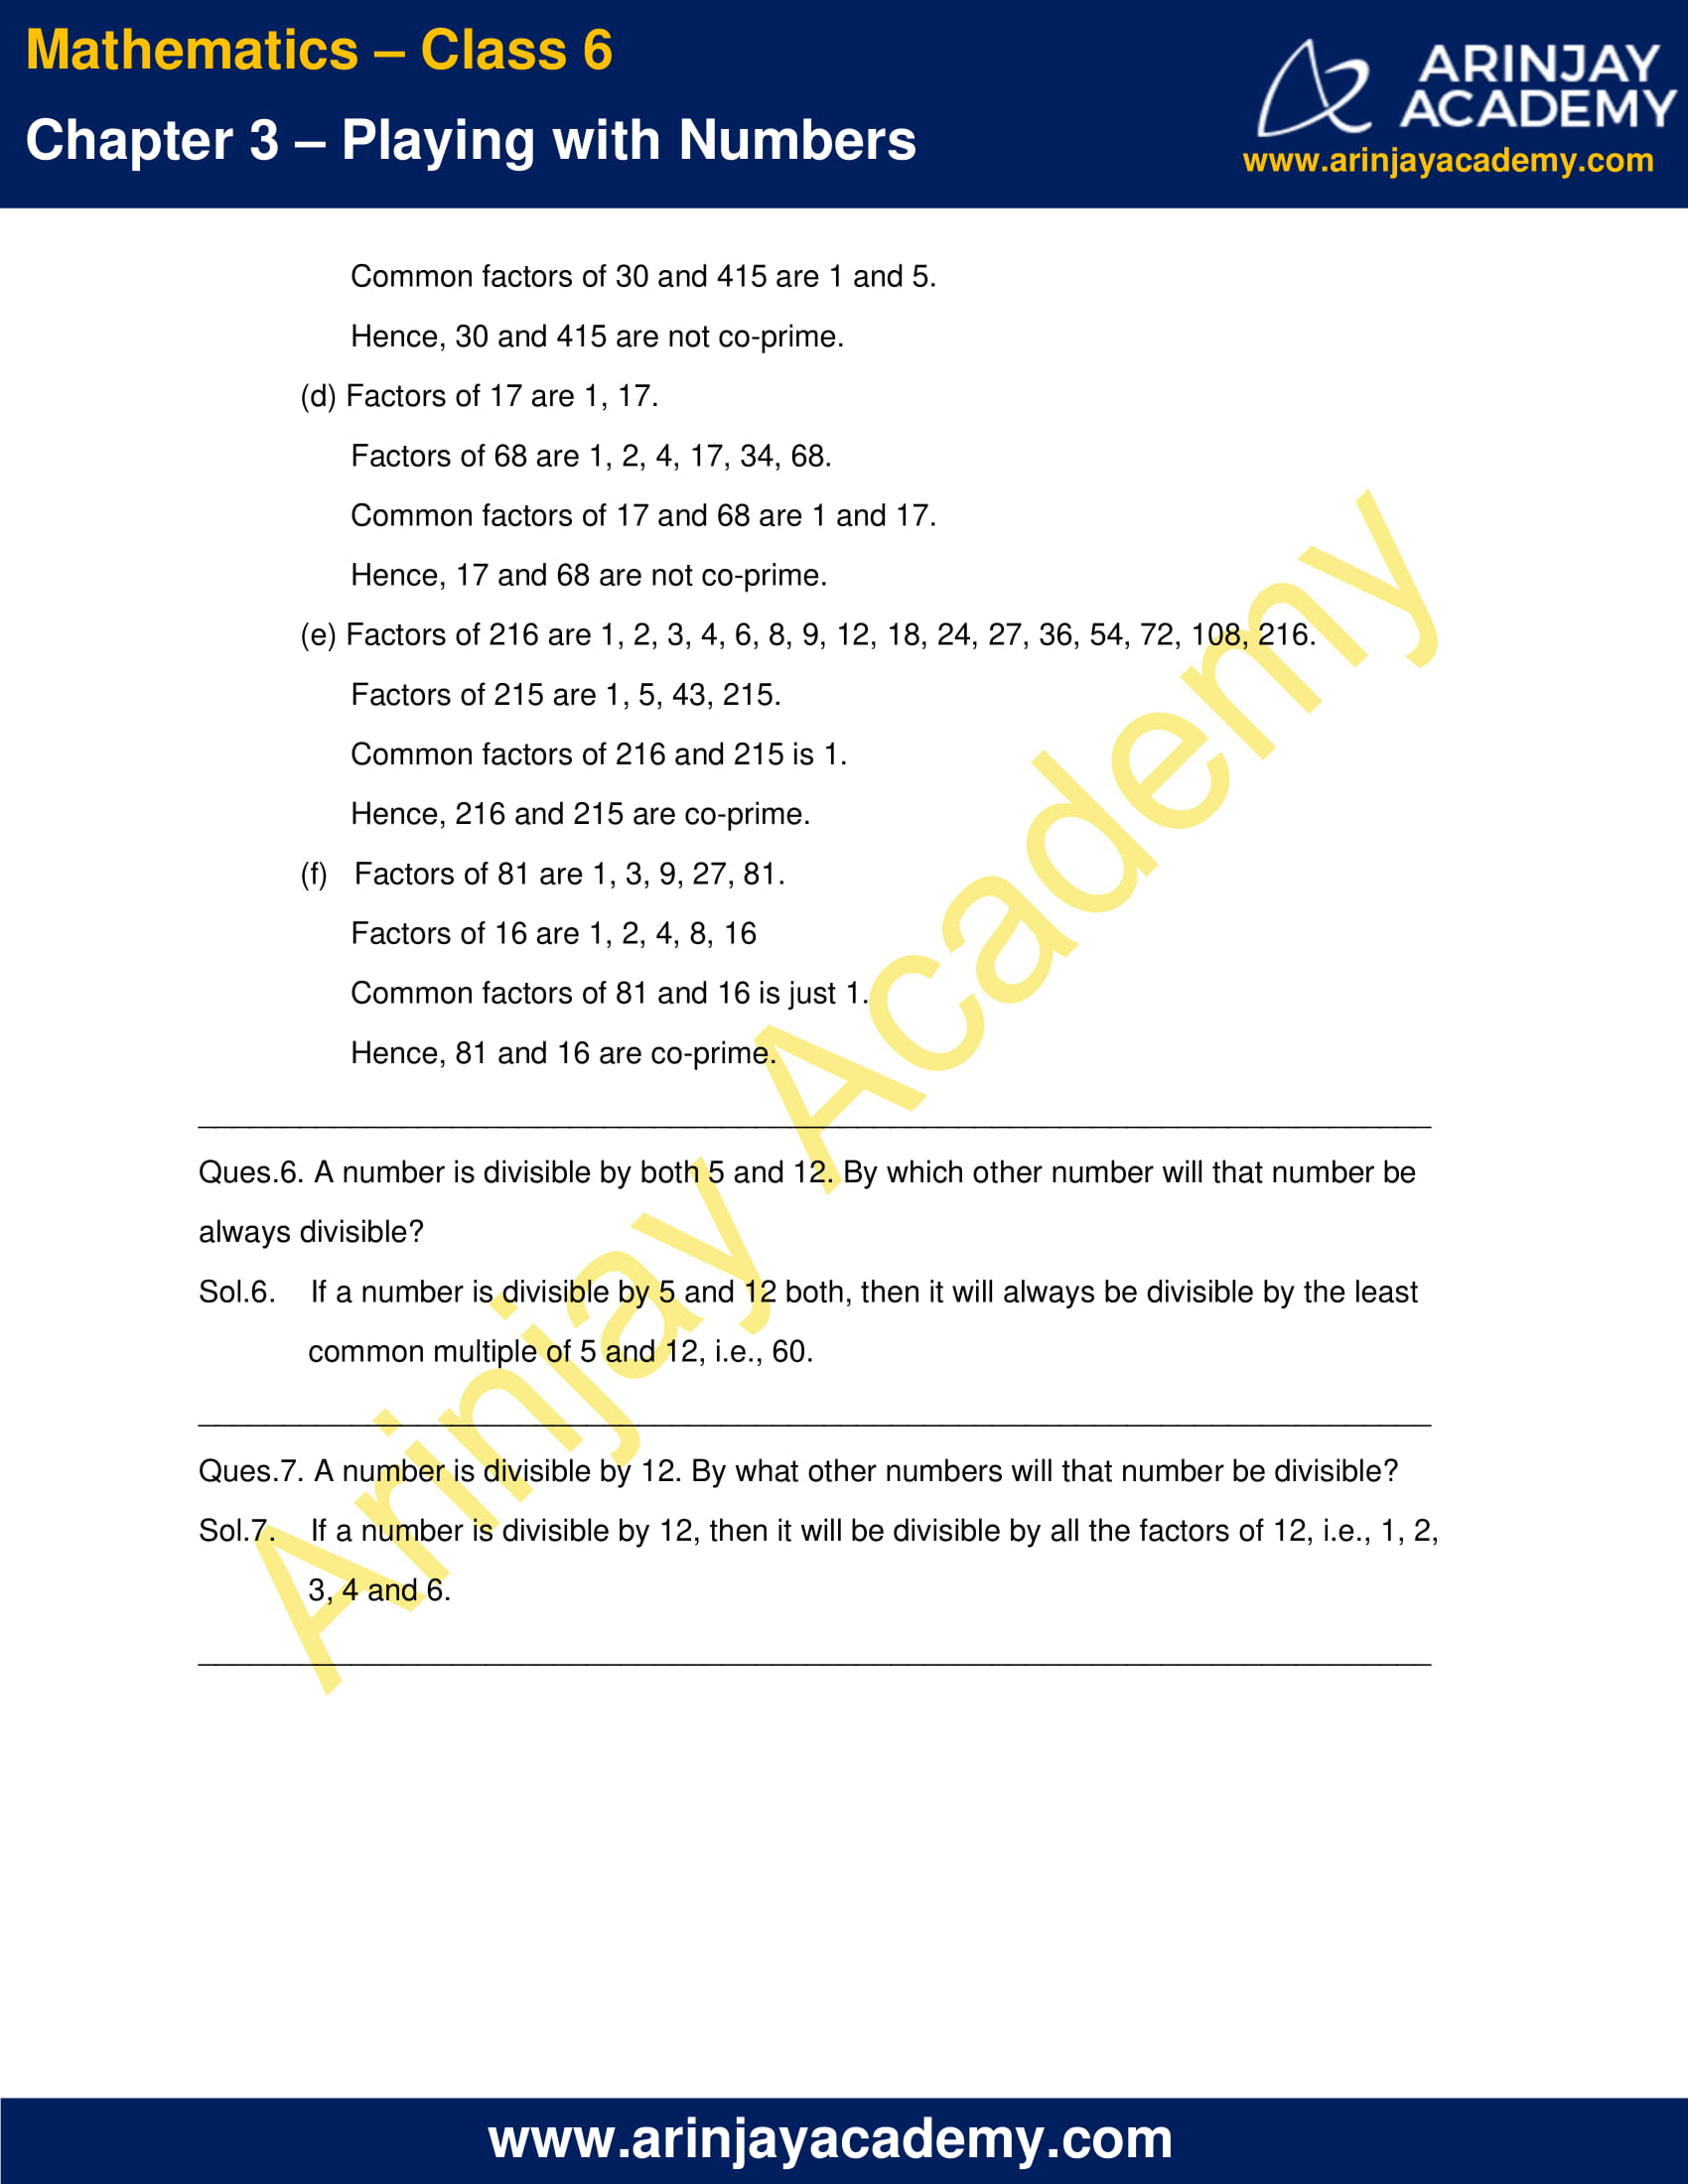 NCERT Solutions for Class 6 Maths Chapter 3 Exercise 3.4 image 3